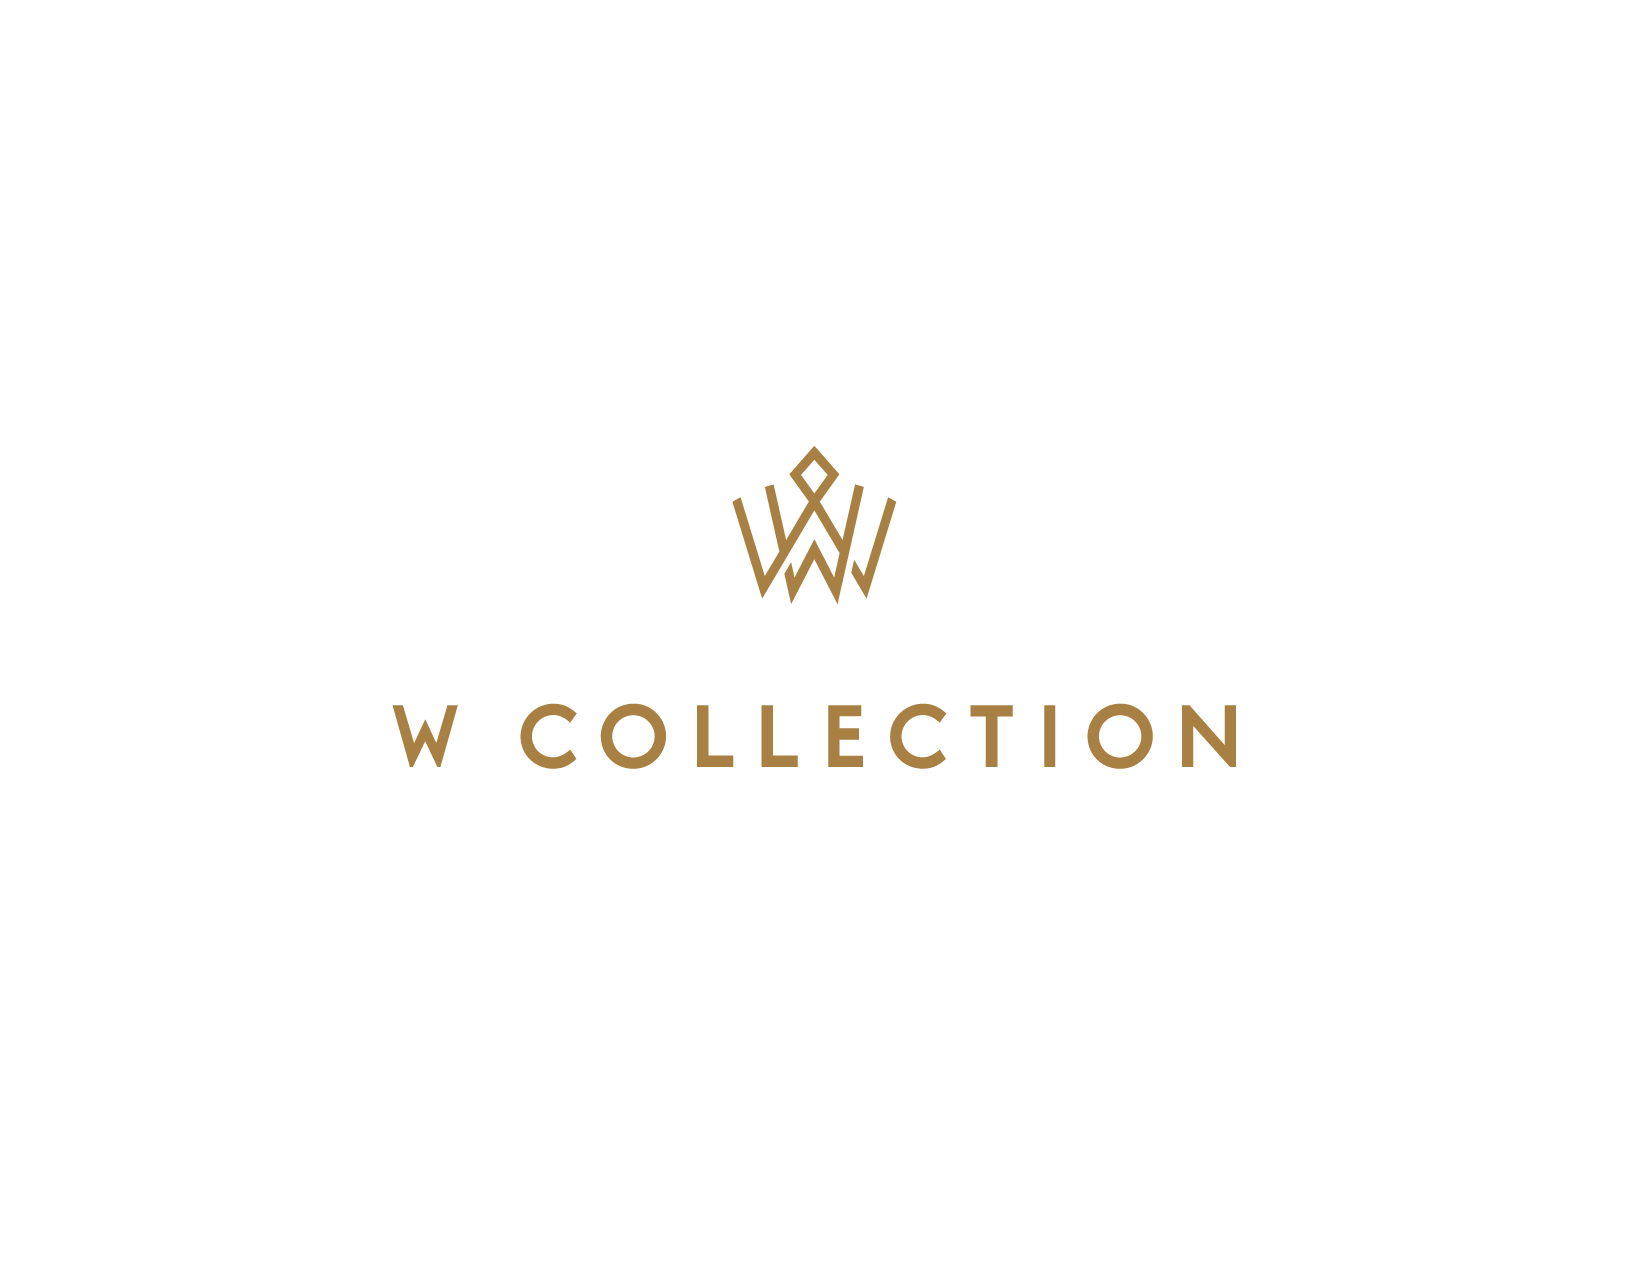 WCollection_RGB_Gold